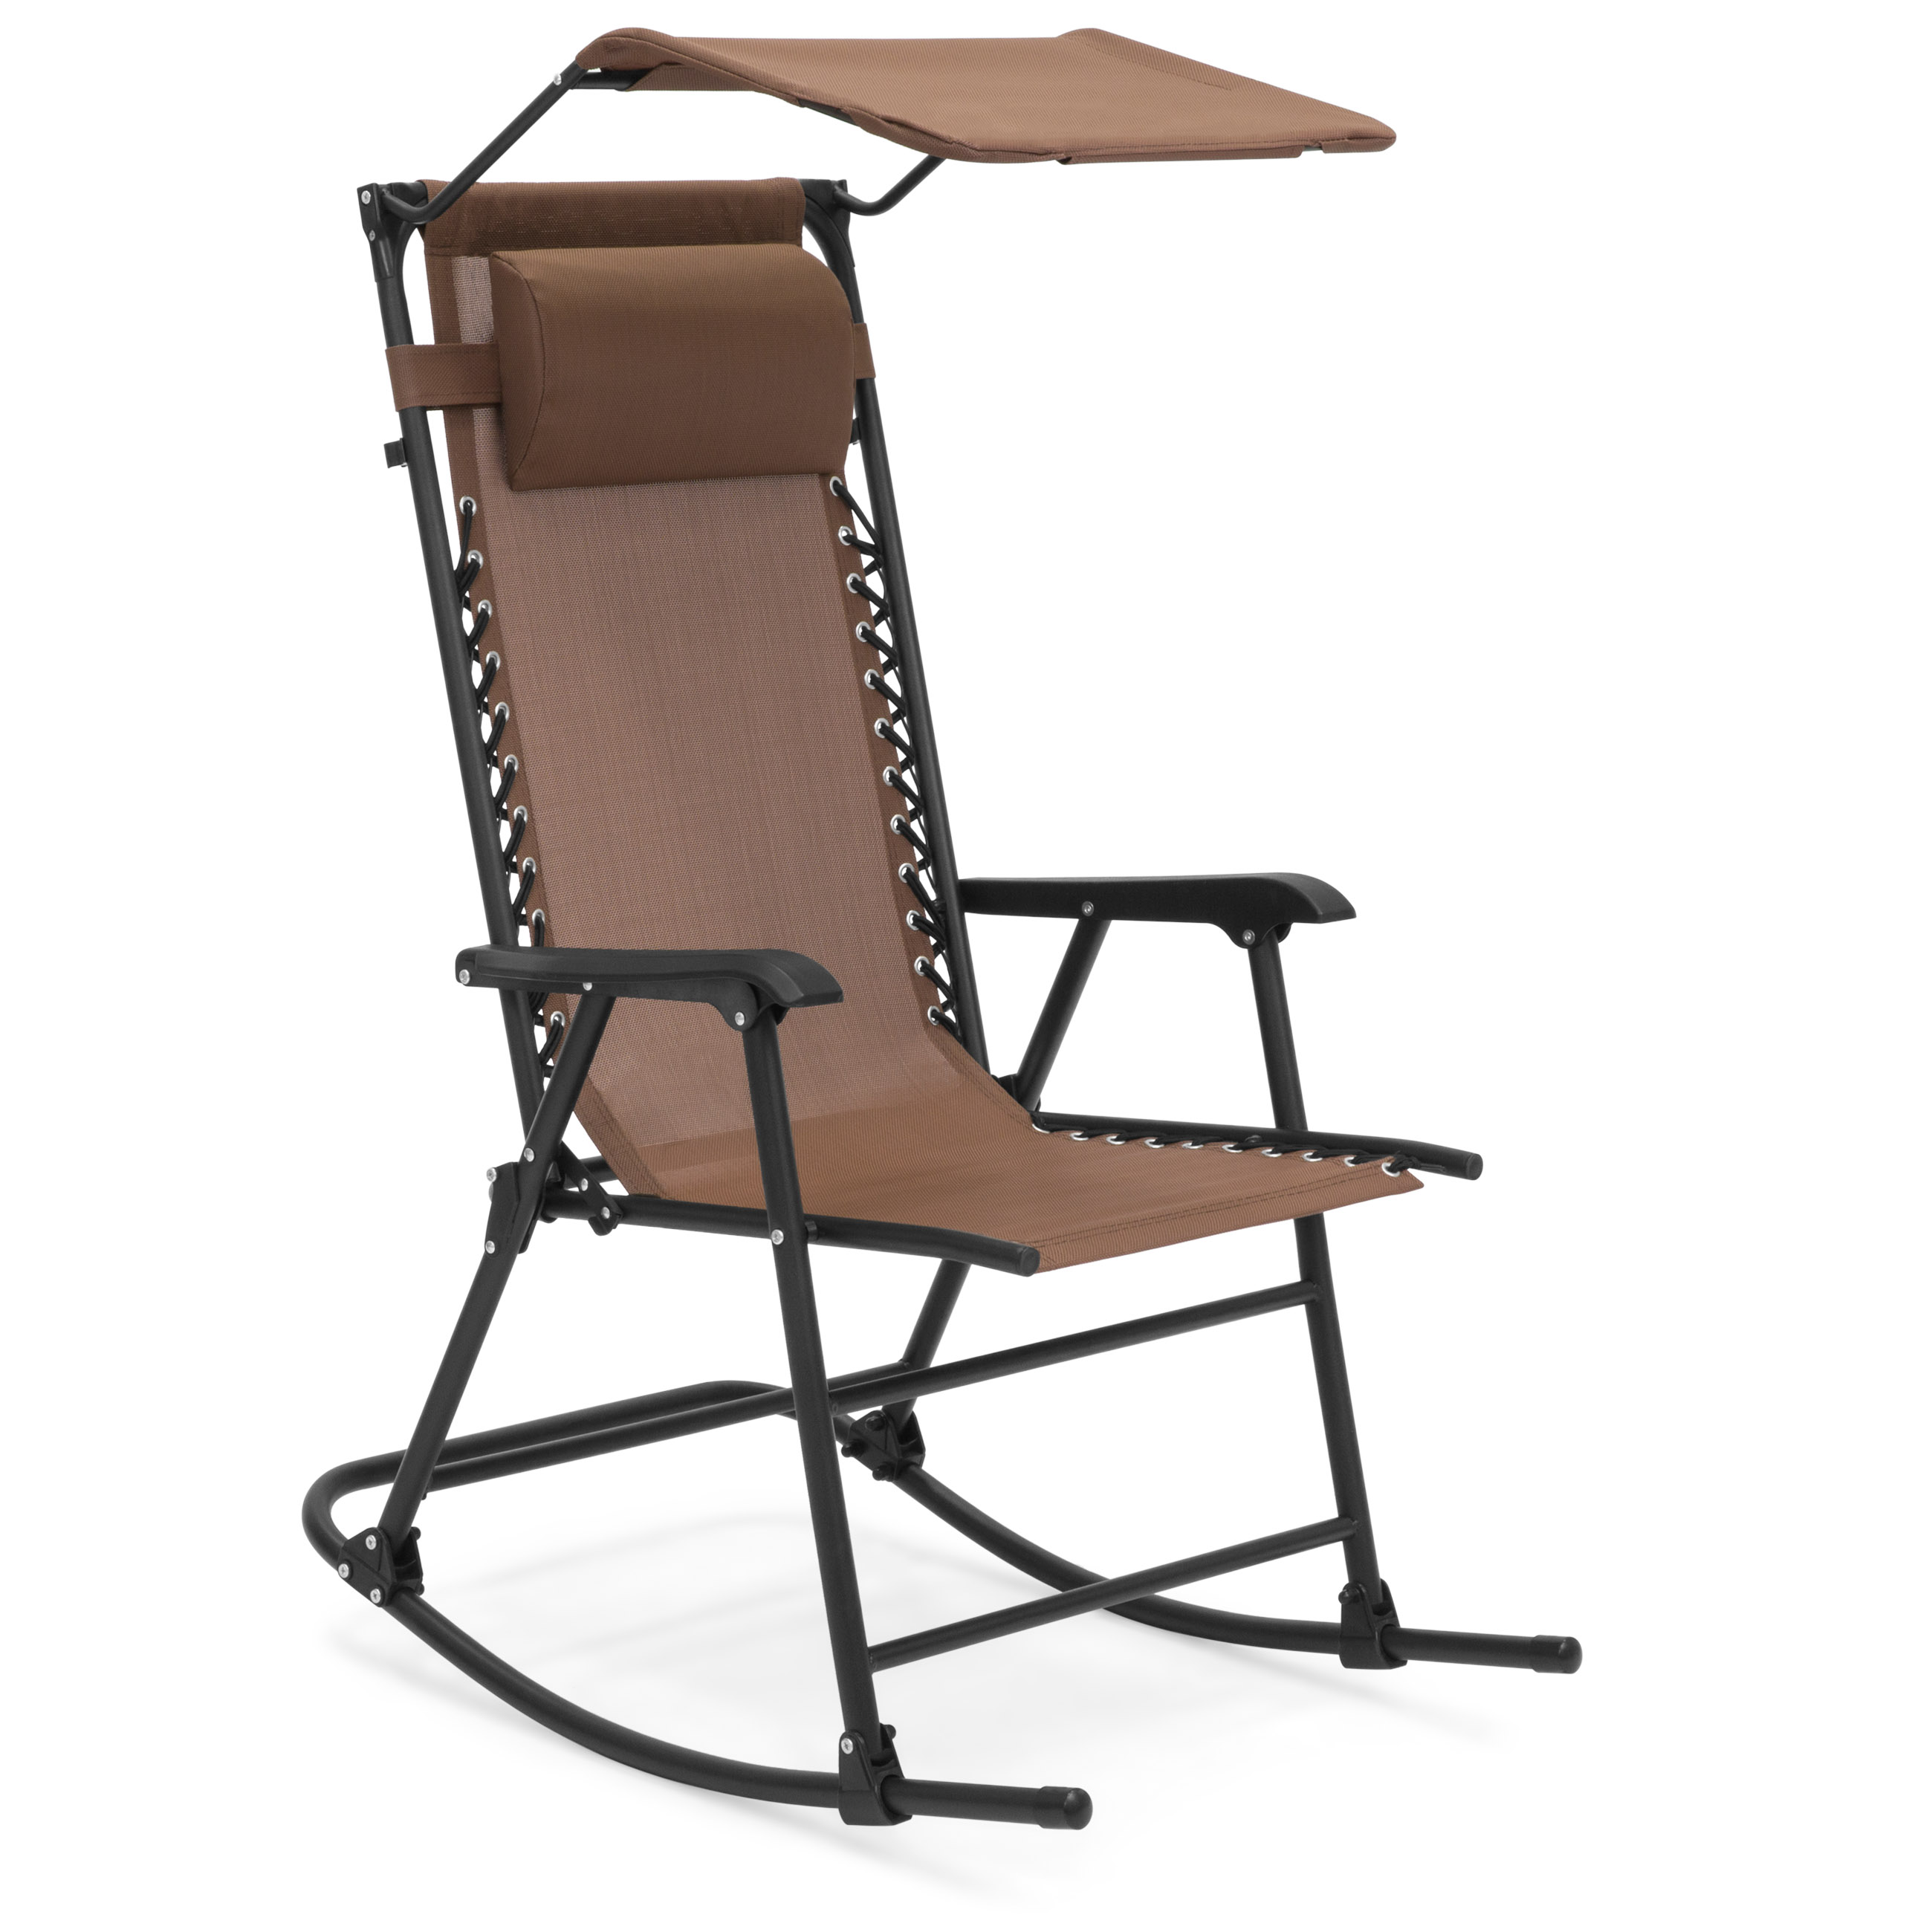 Best Choice Products Foldable Zero Gravity Rocking Patio Chair w/ Sunshade Canopy - Brown